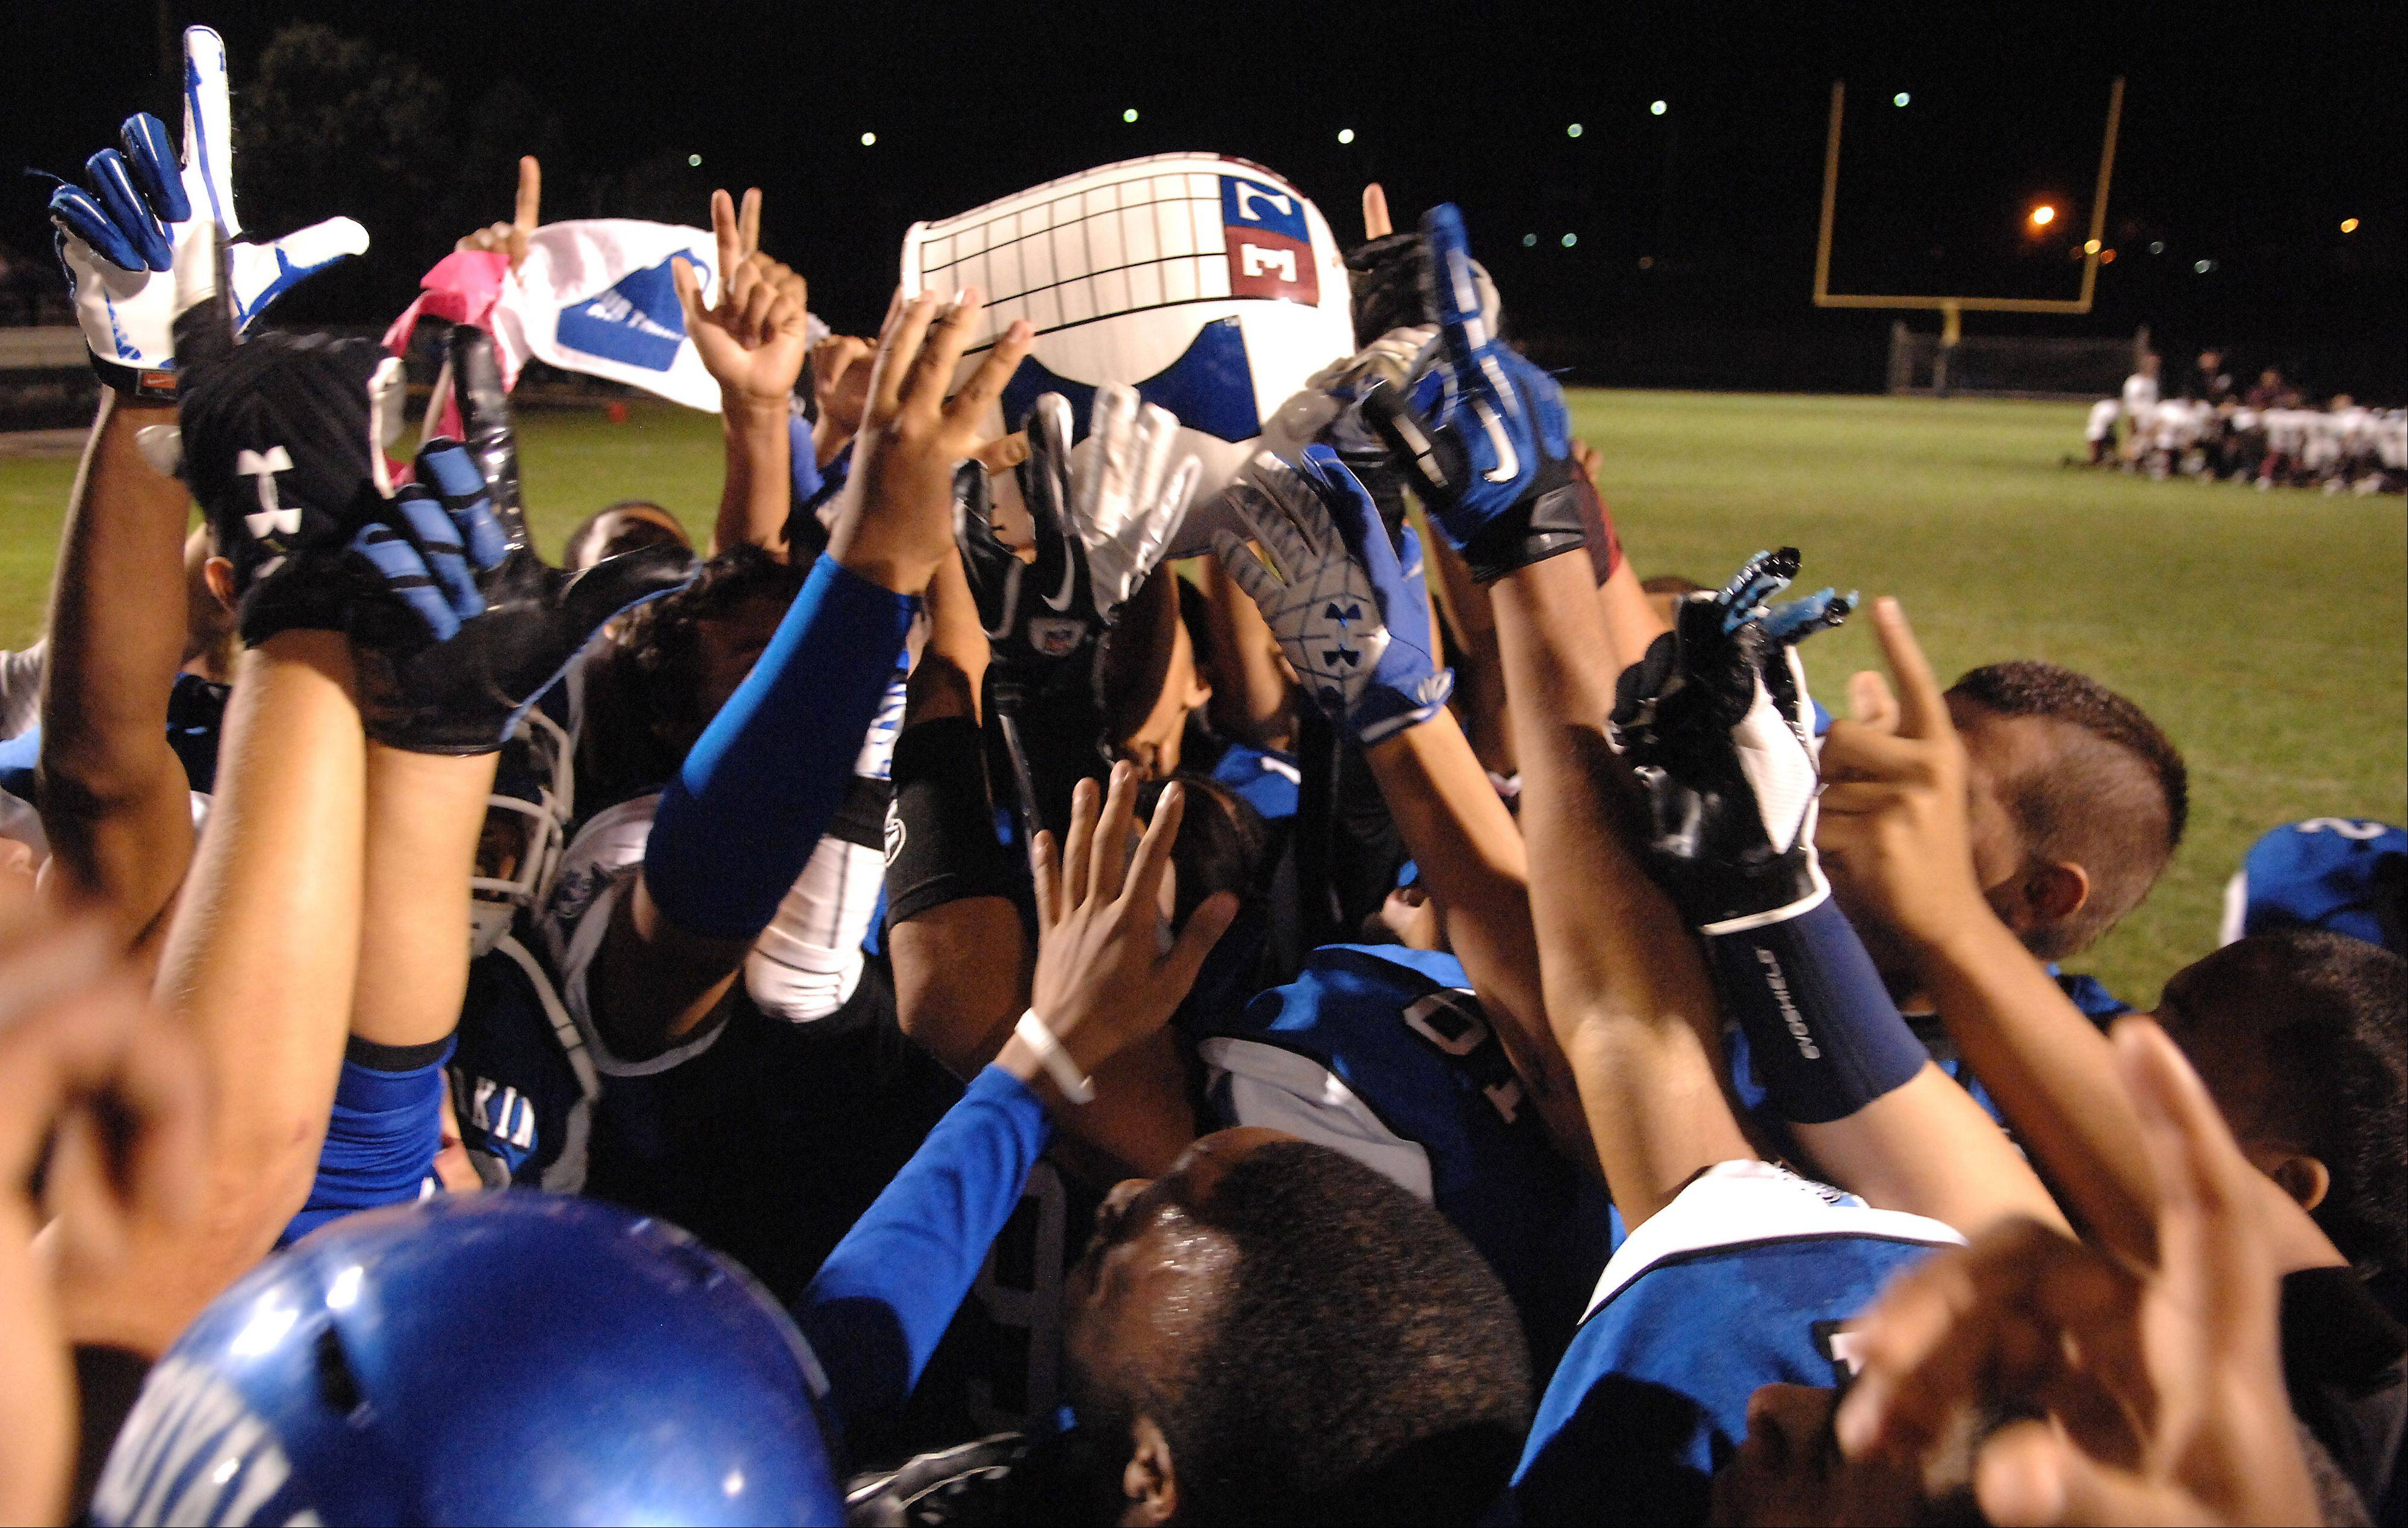 Larkin players celebrate with the jug following their win over Elgin during Friday�s game at Elgin High School.